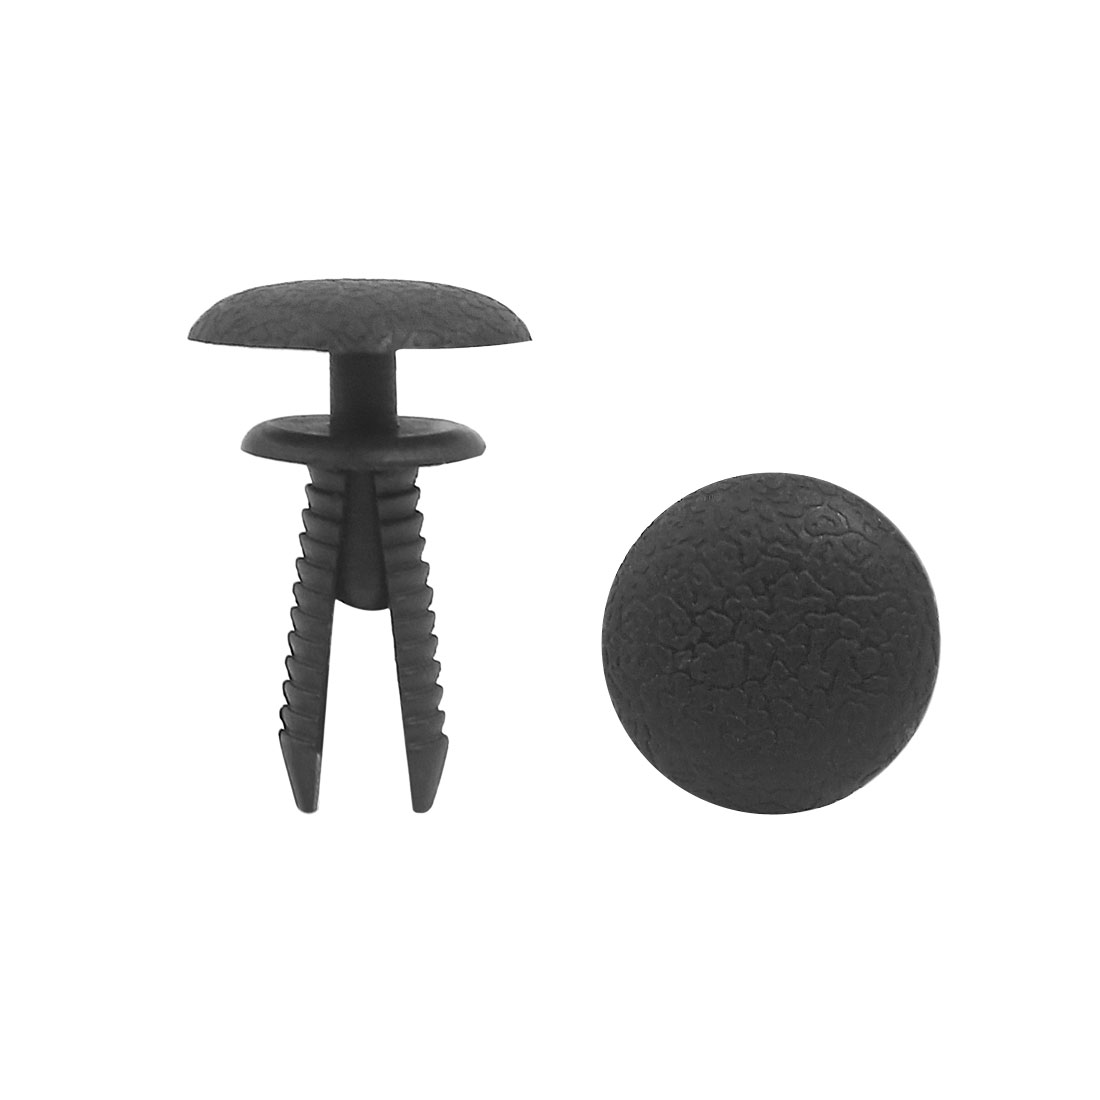 100Pcs Black Auto Vehicle Dash Dashboard Trim Plastic Rivet Fastener 5mm Hole